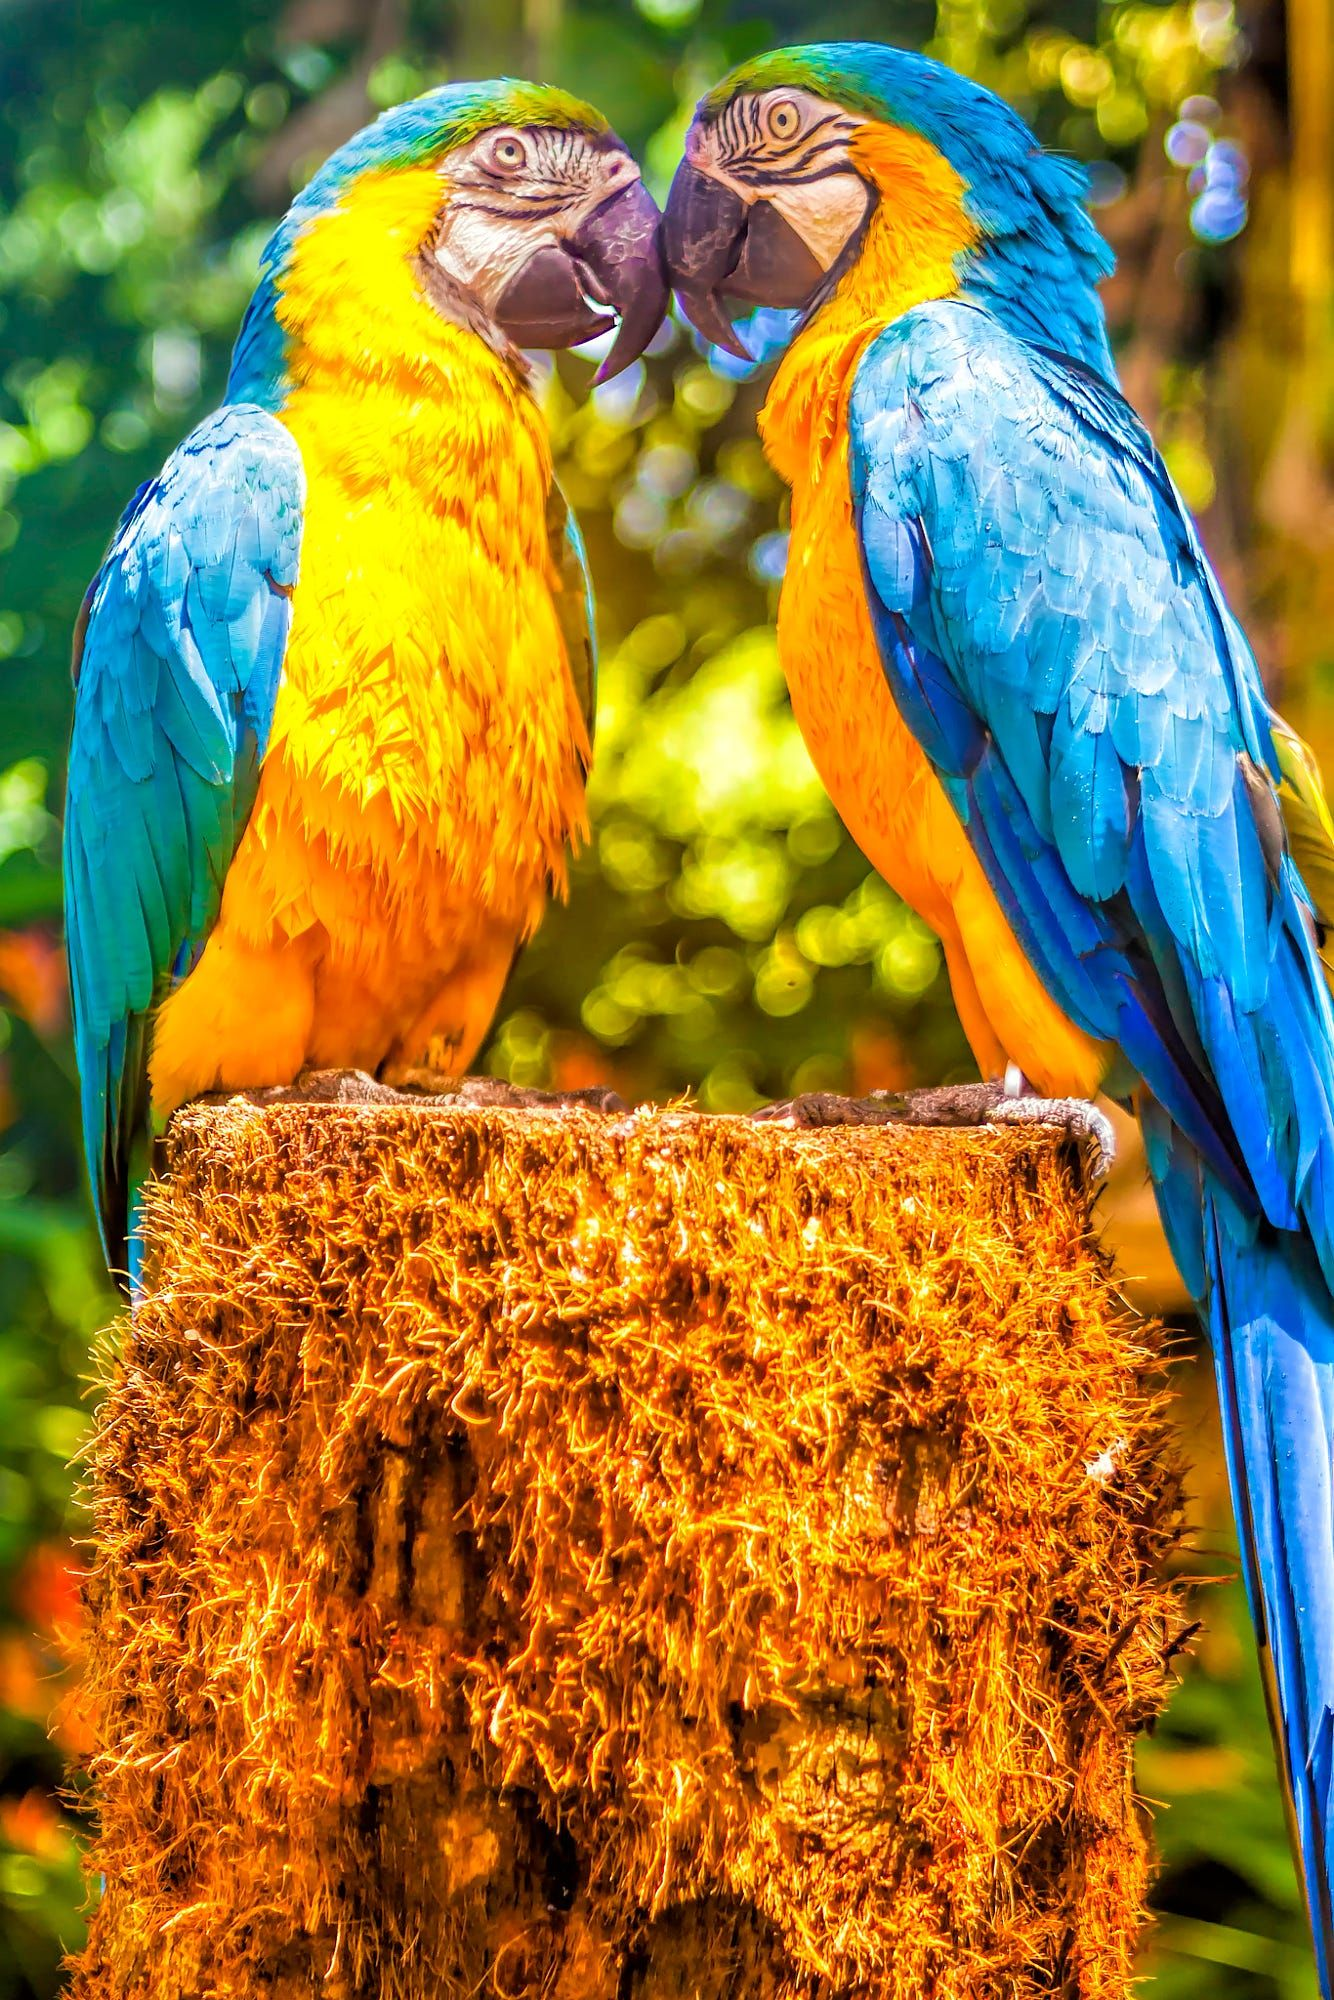 A Mated Pair Of Blue And Yellow Macaw These Two Parrots Were Totally Inseparable